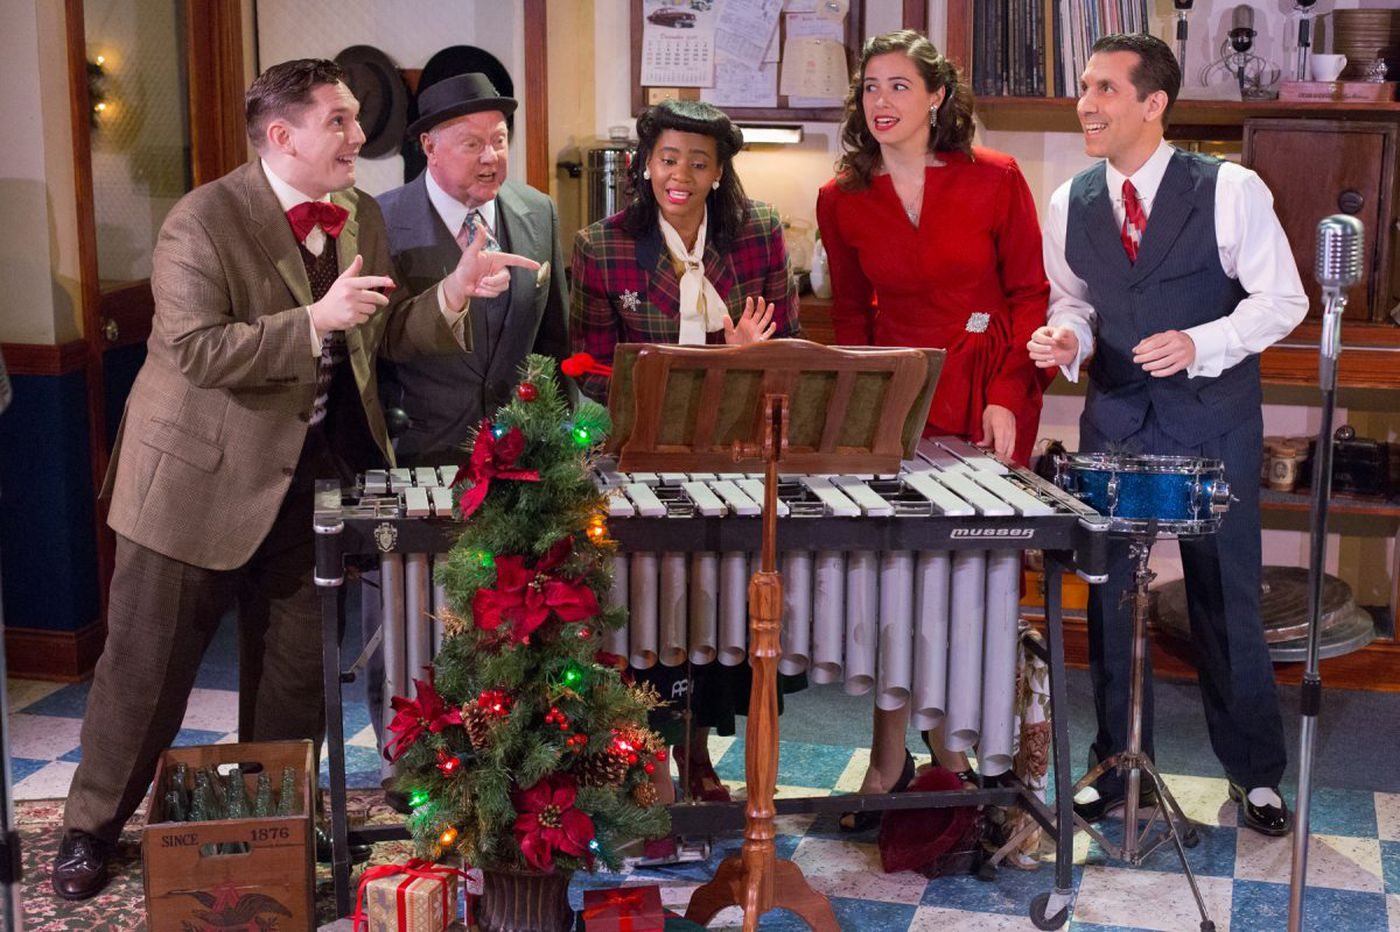 Here's your best bets for family-friendly holiday plays and shows